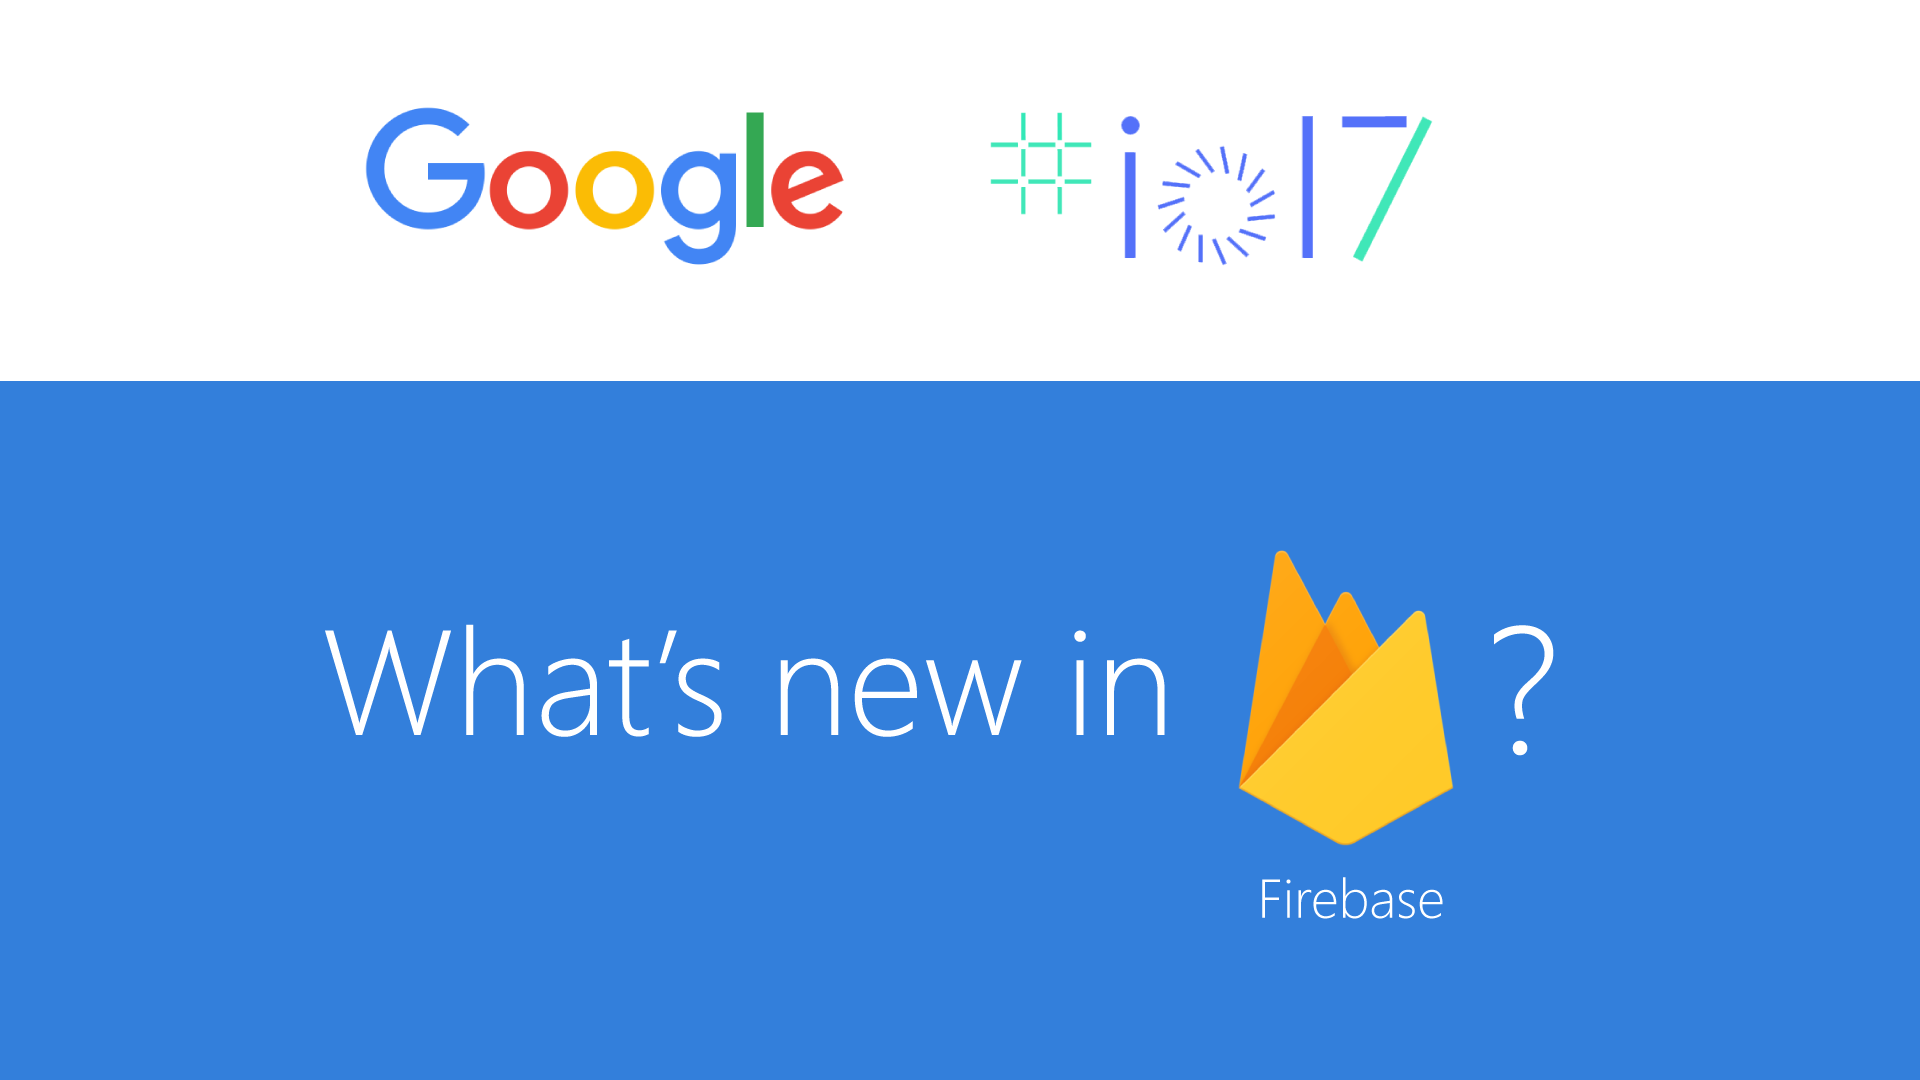 Whats new in Firebase